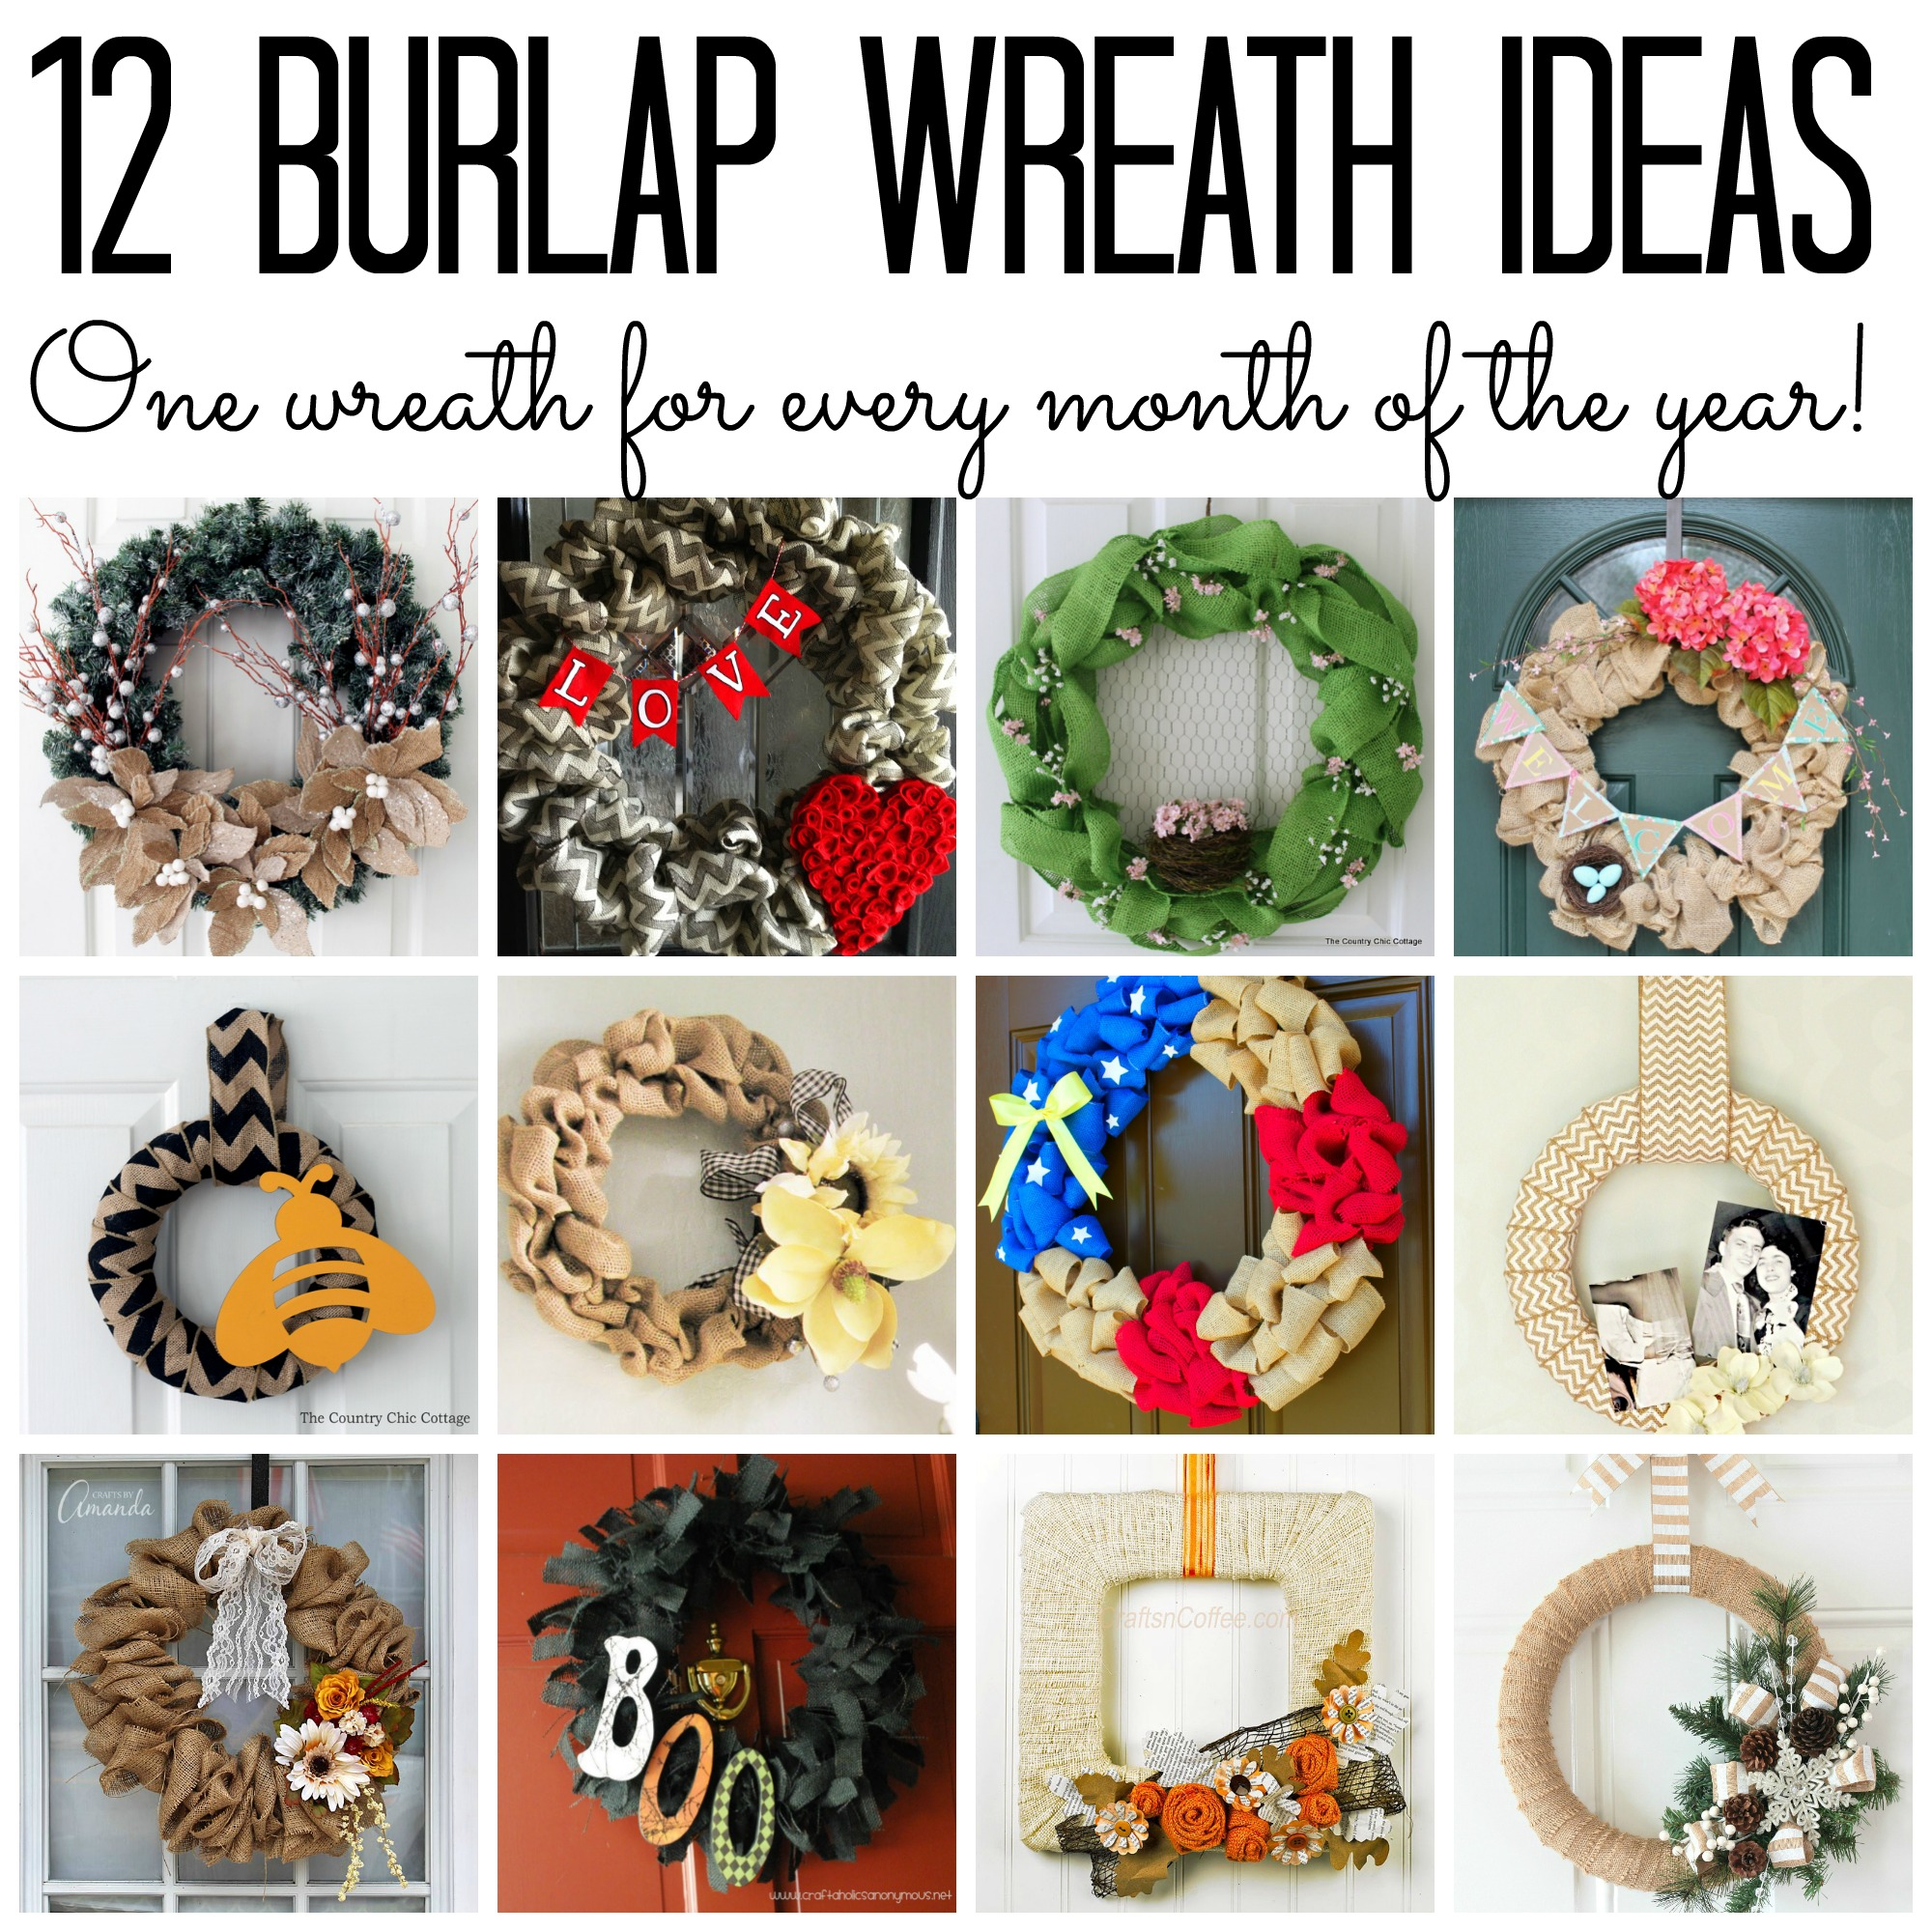 Burlap wreaths - 12 ideas for every month of the year! Great craft projects for your home!